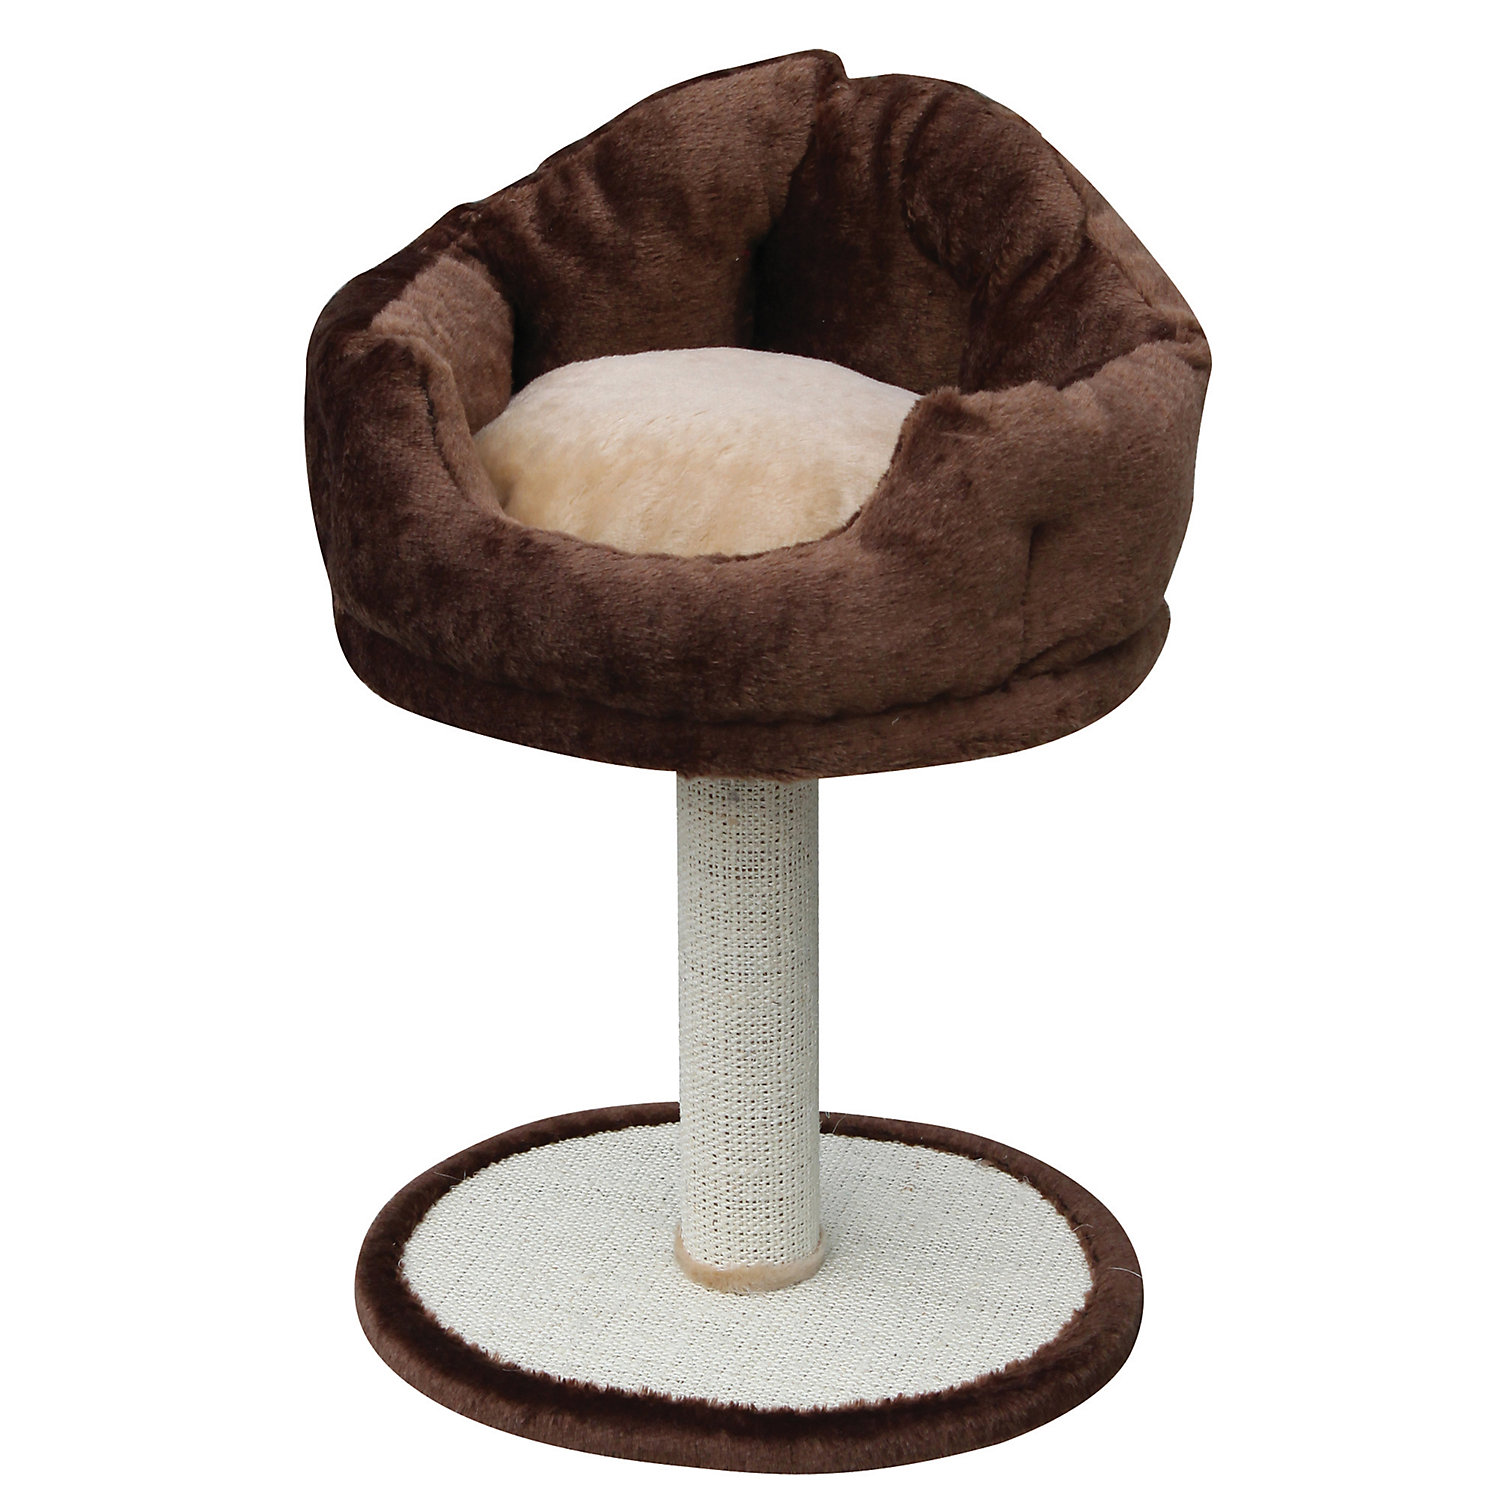 Petpals Group Brown Barstool Design Cat Scratching Post 24 Standard